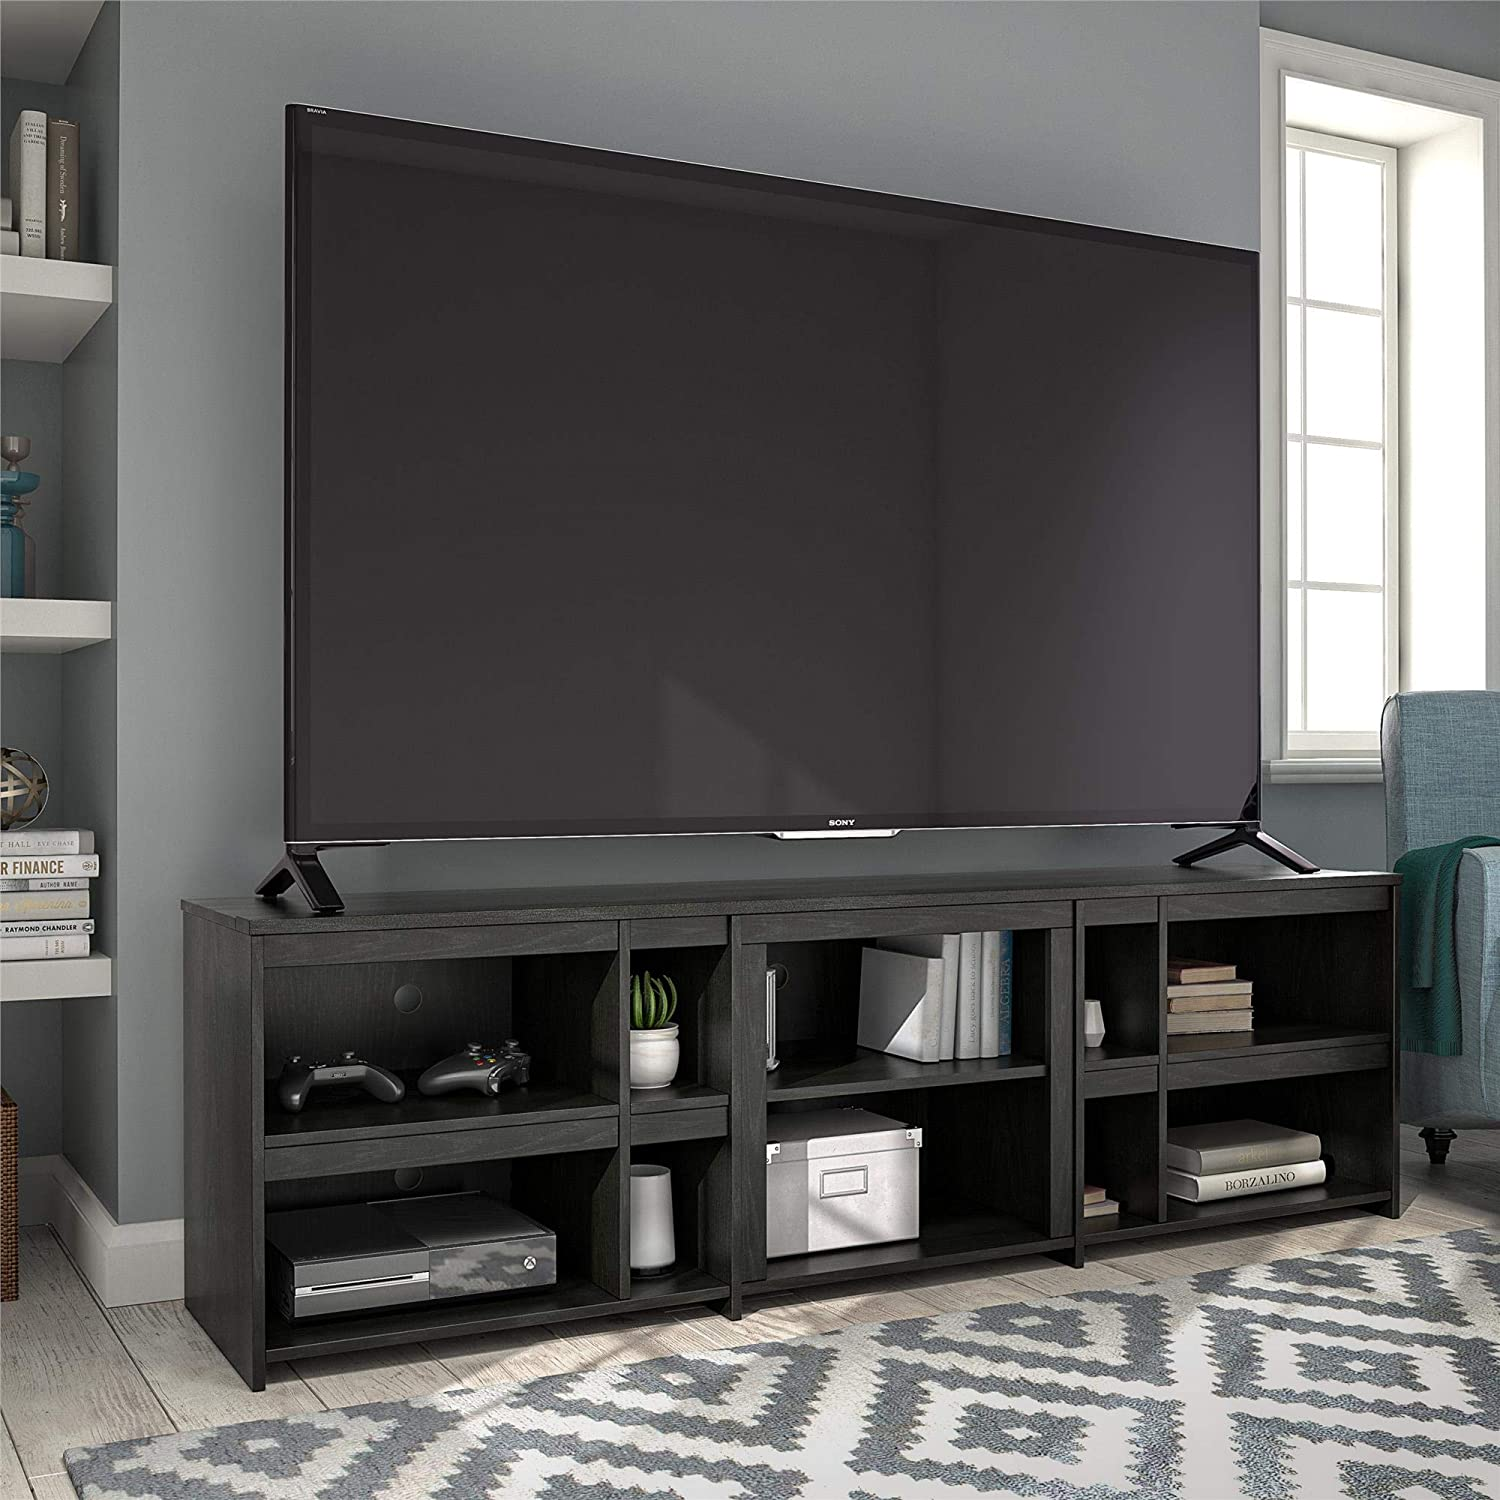 Ameriwood Home Miles Tv Stand For Tvs Up To 70 Black Oak Amazon Ca Home Kitchen